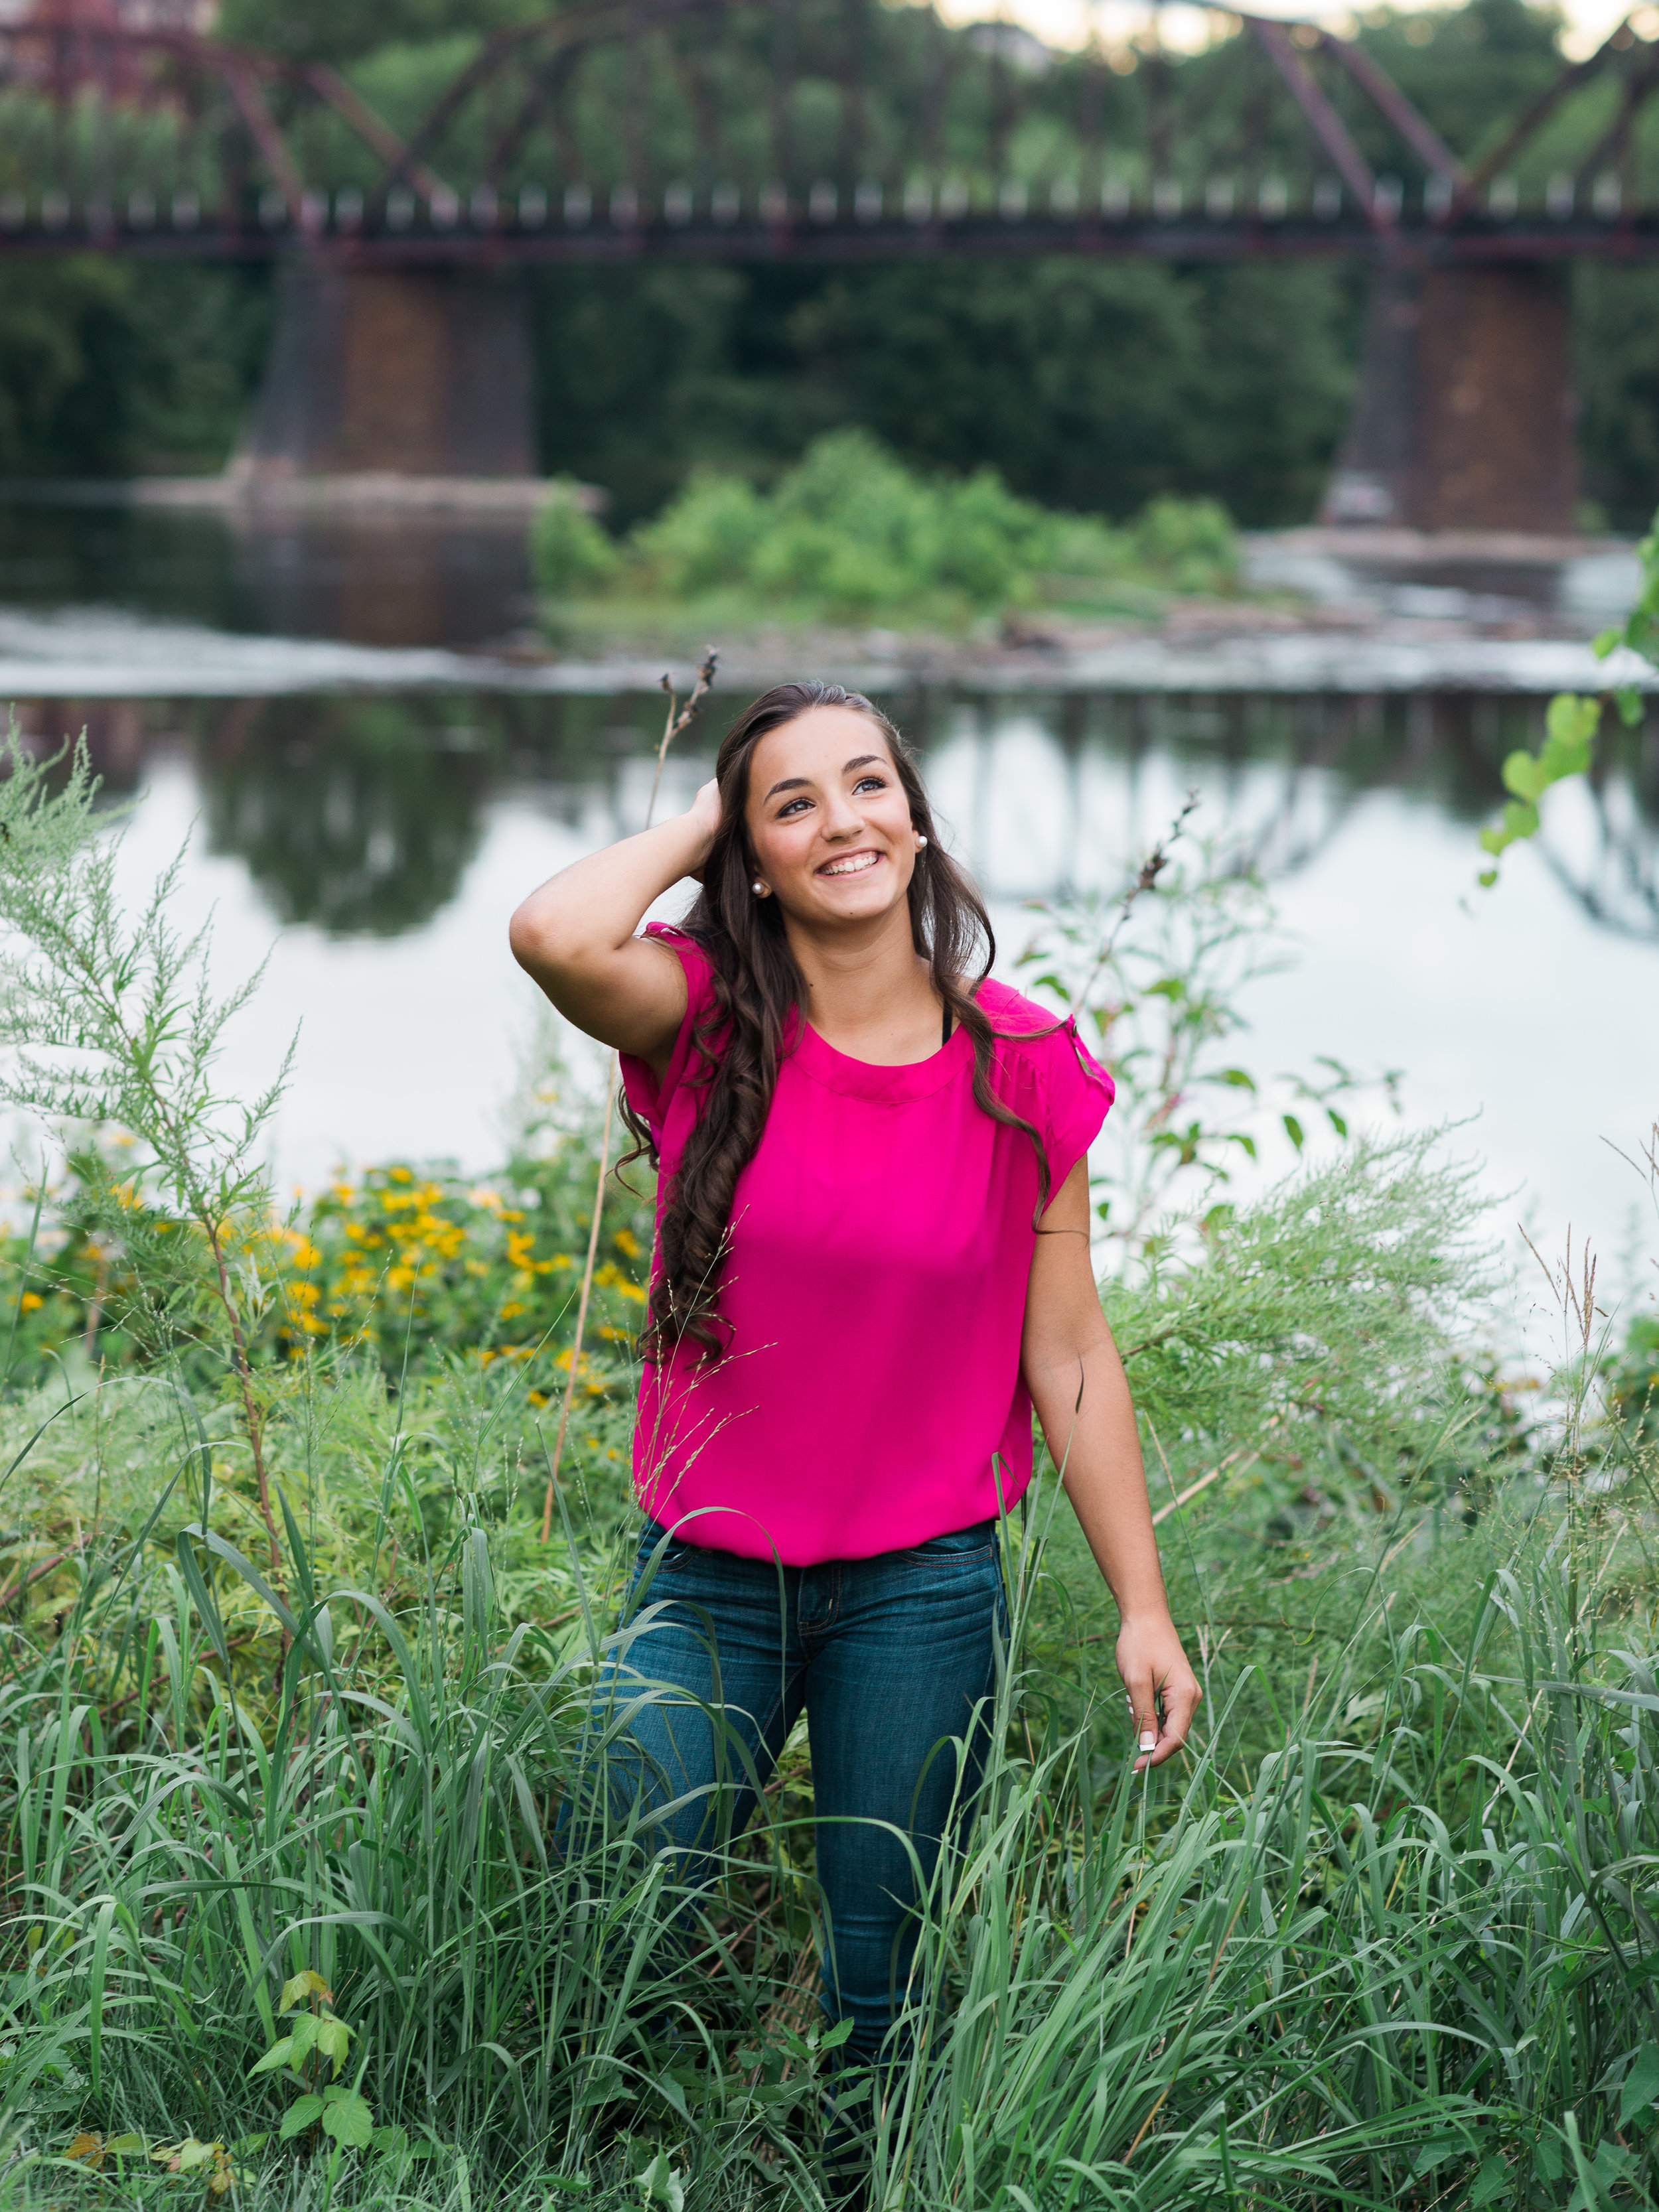 Senior Pictures in Downtown Easton